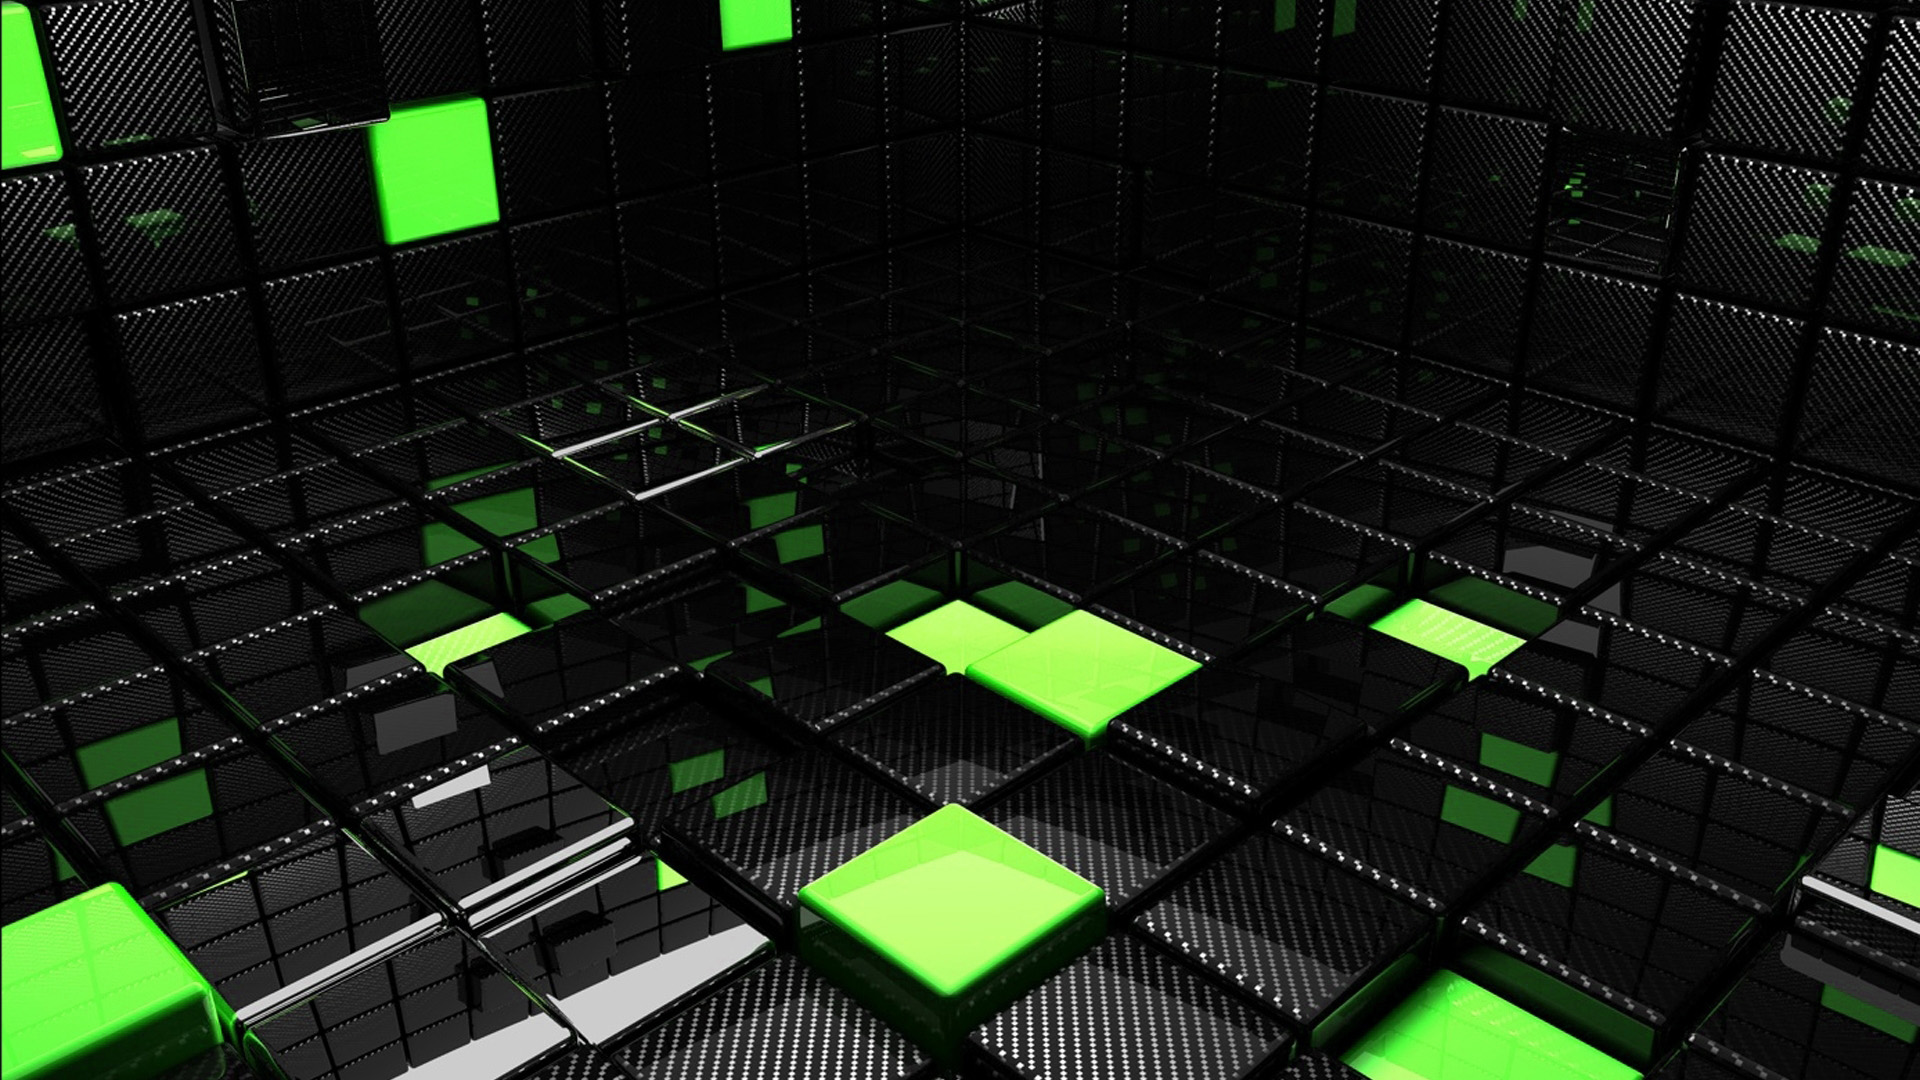 Black Cube Wallpapers Green Backgrounds Pictures and images 1920x1080